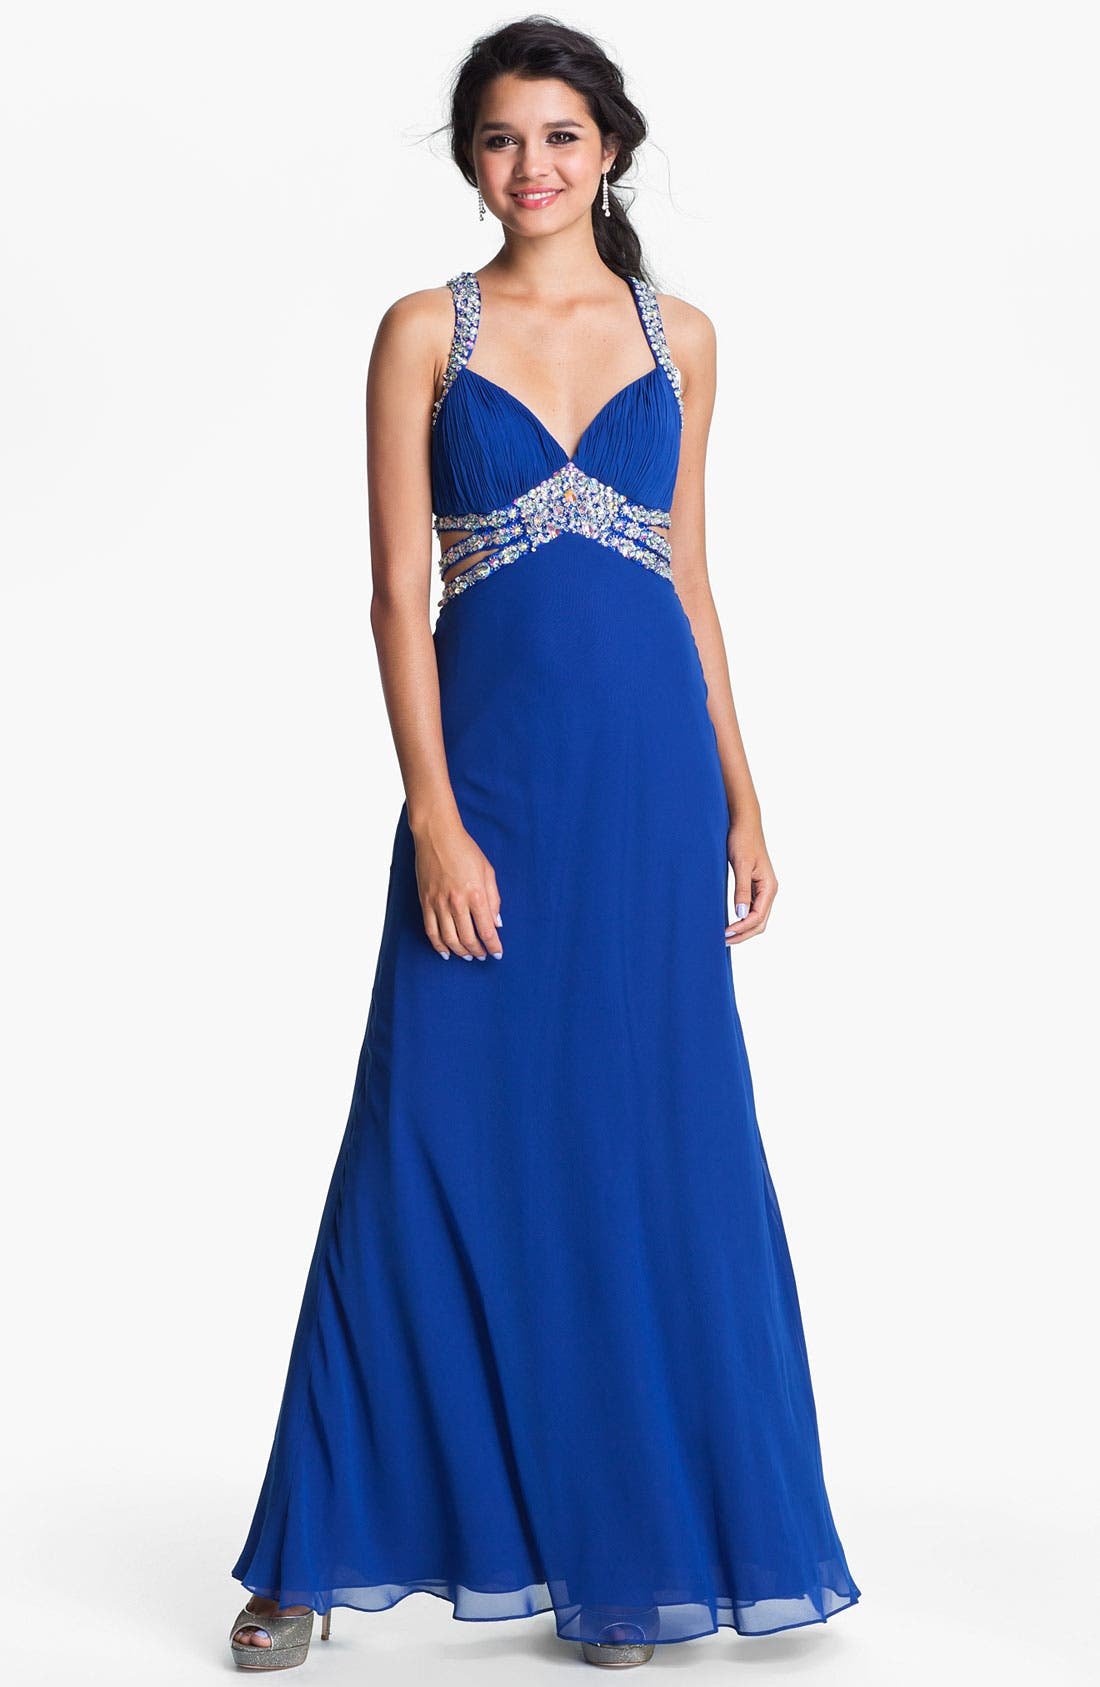 Alternate Image 1 Selected - Faviana Beaded Halter Chiffon Dress (Online Only)